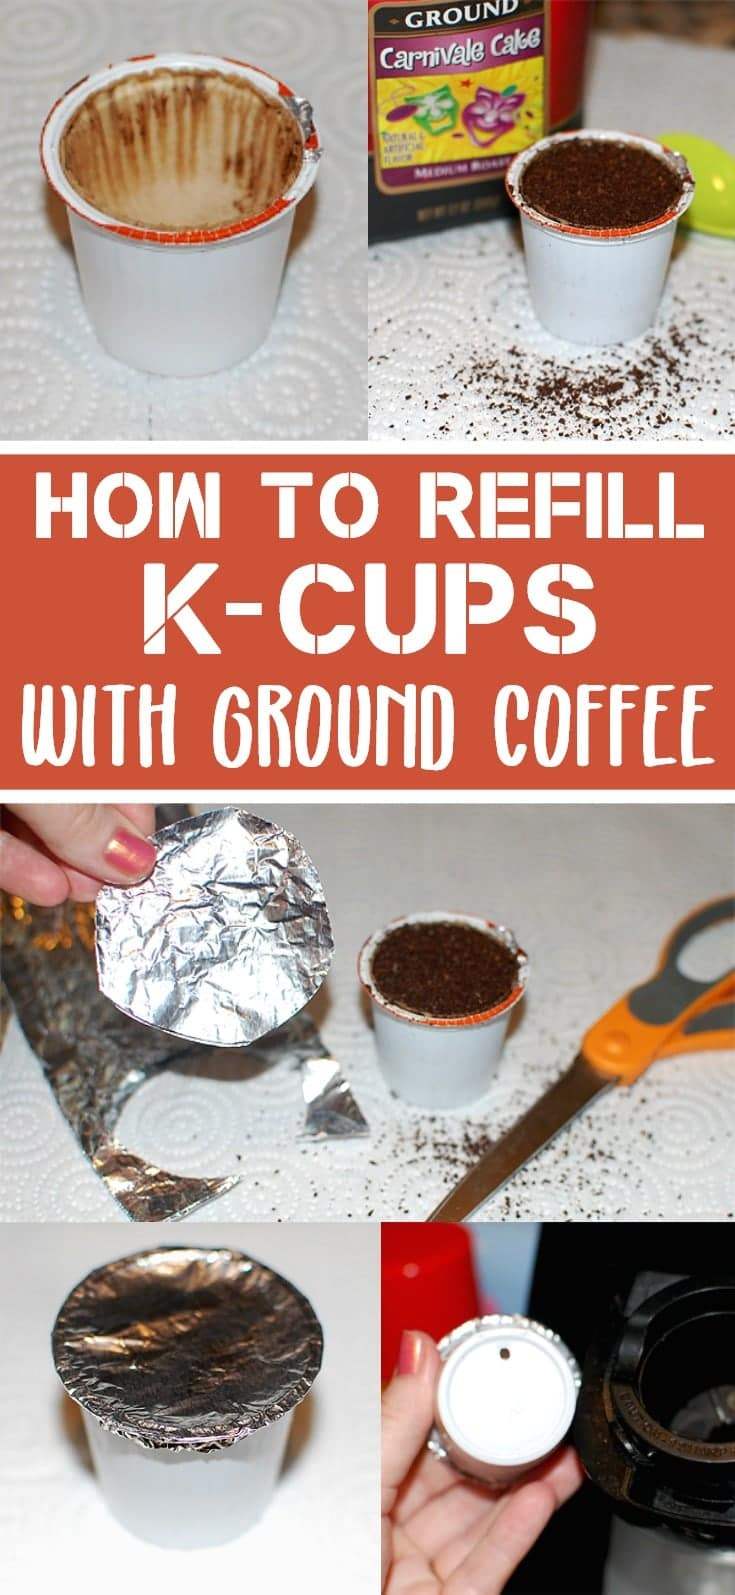 how to refill k-cups with ground coffee